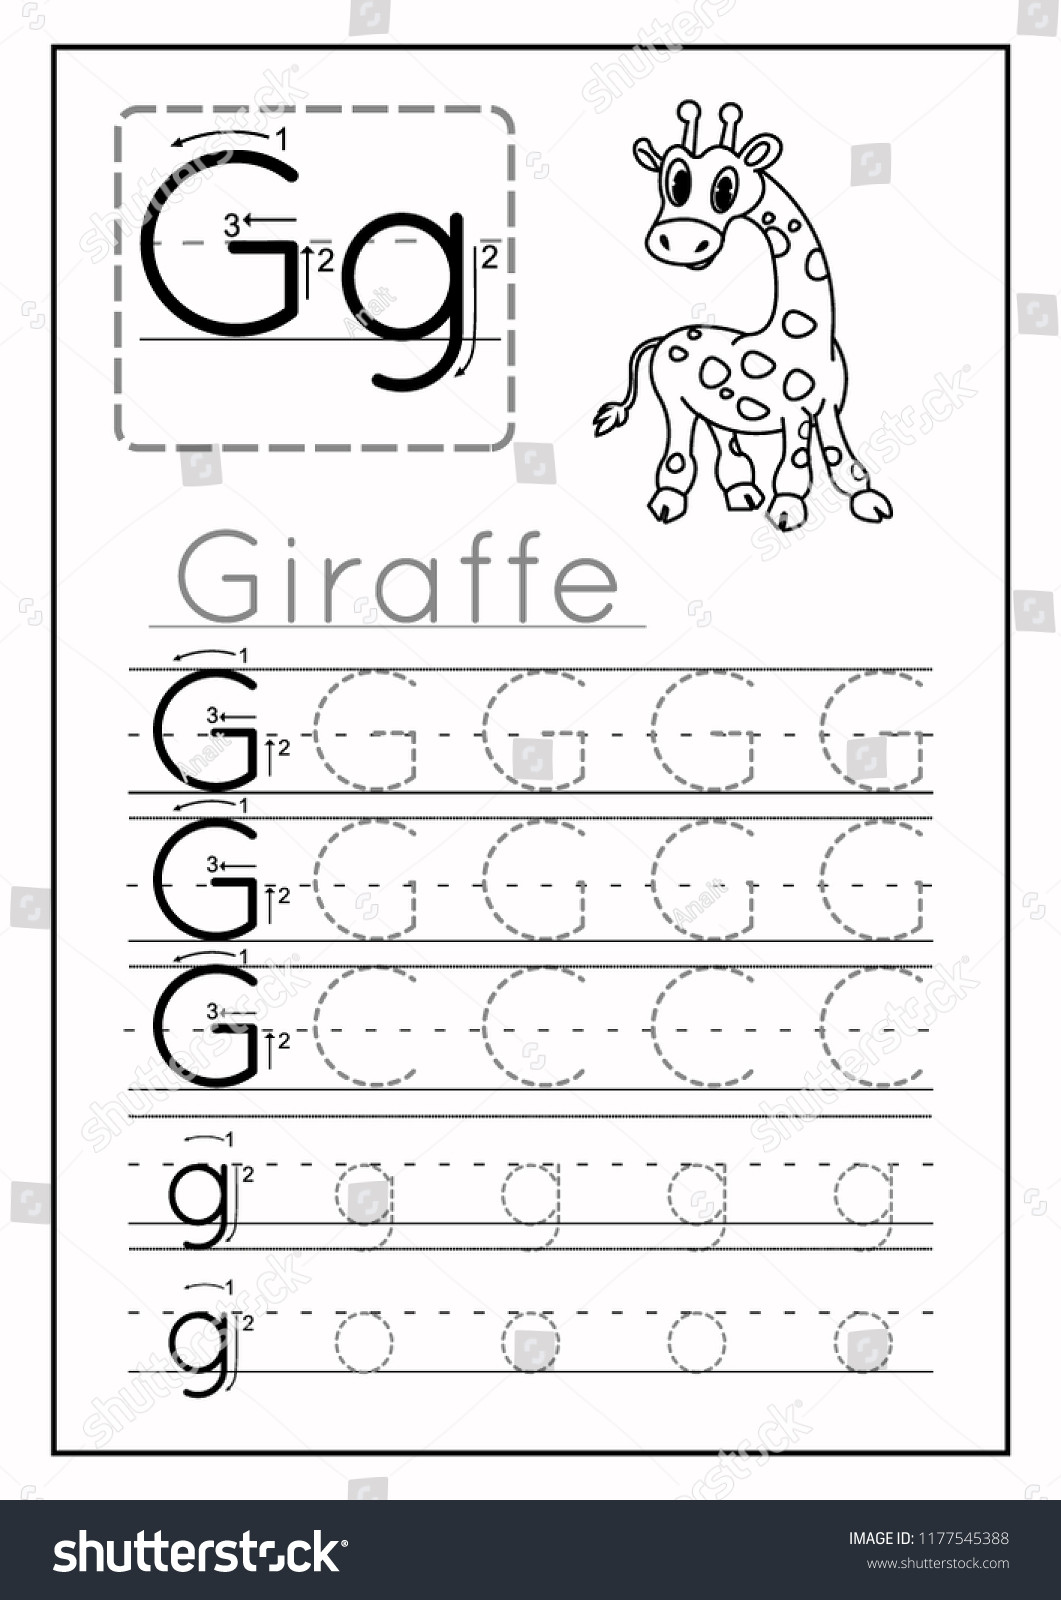 Preschool Letter G Worksheets Writing Practice Letter G Printable Worksheet Stock Vector